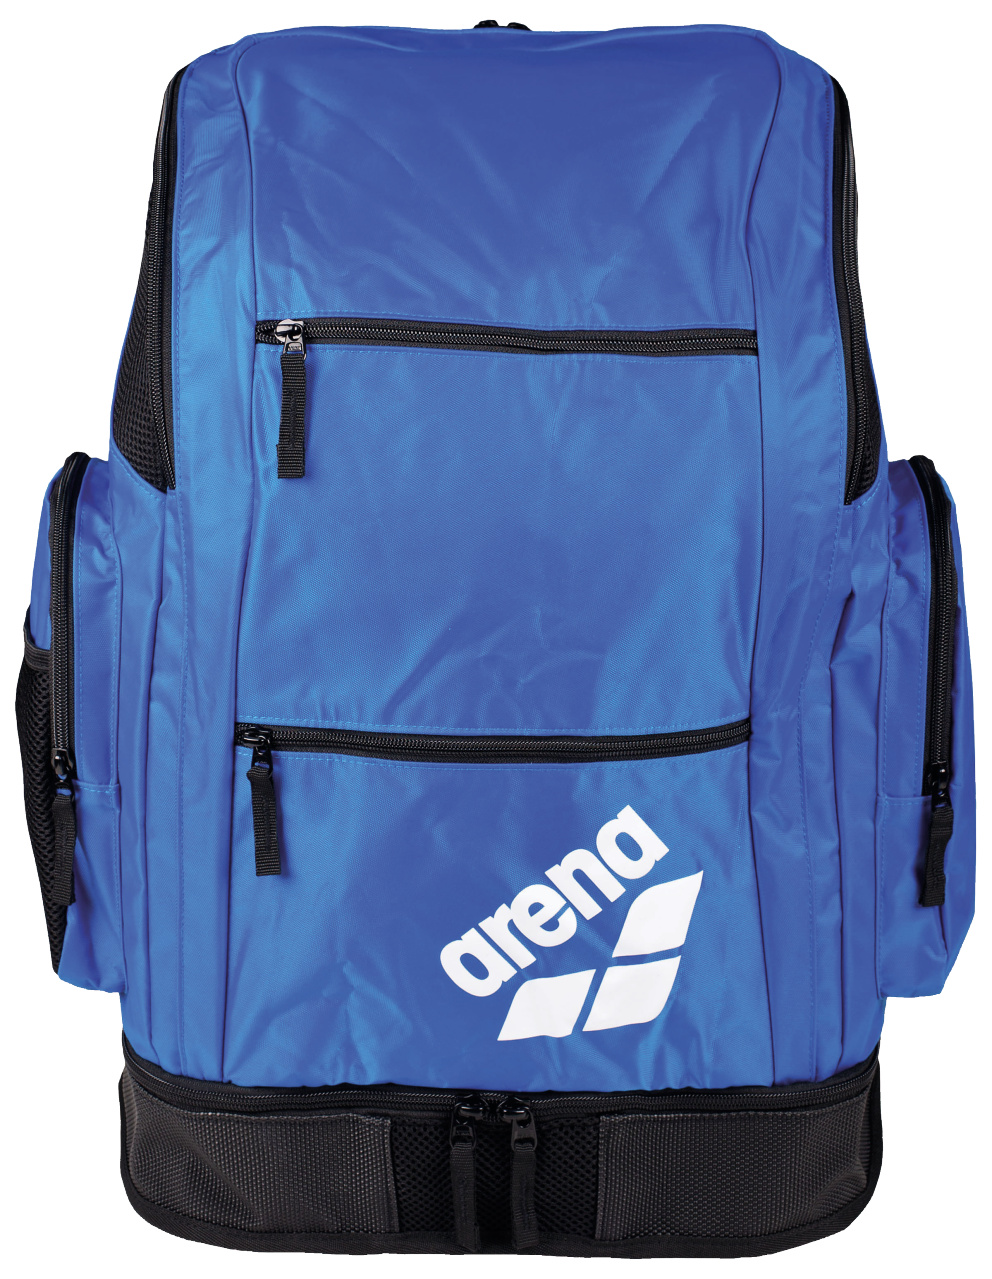 ARENA SPIKY 2 LARGE BACKPACK 1E00471 A